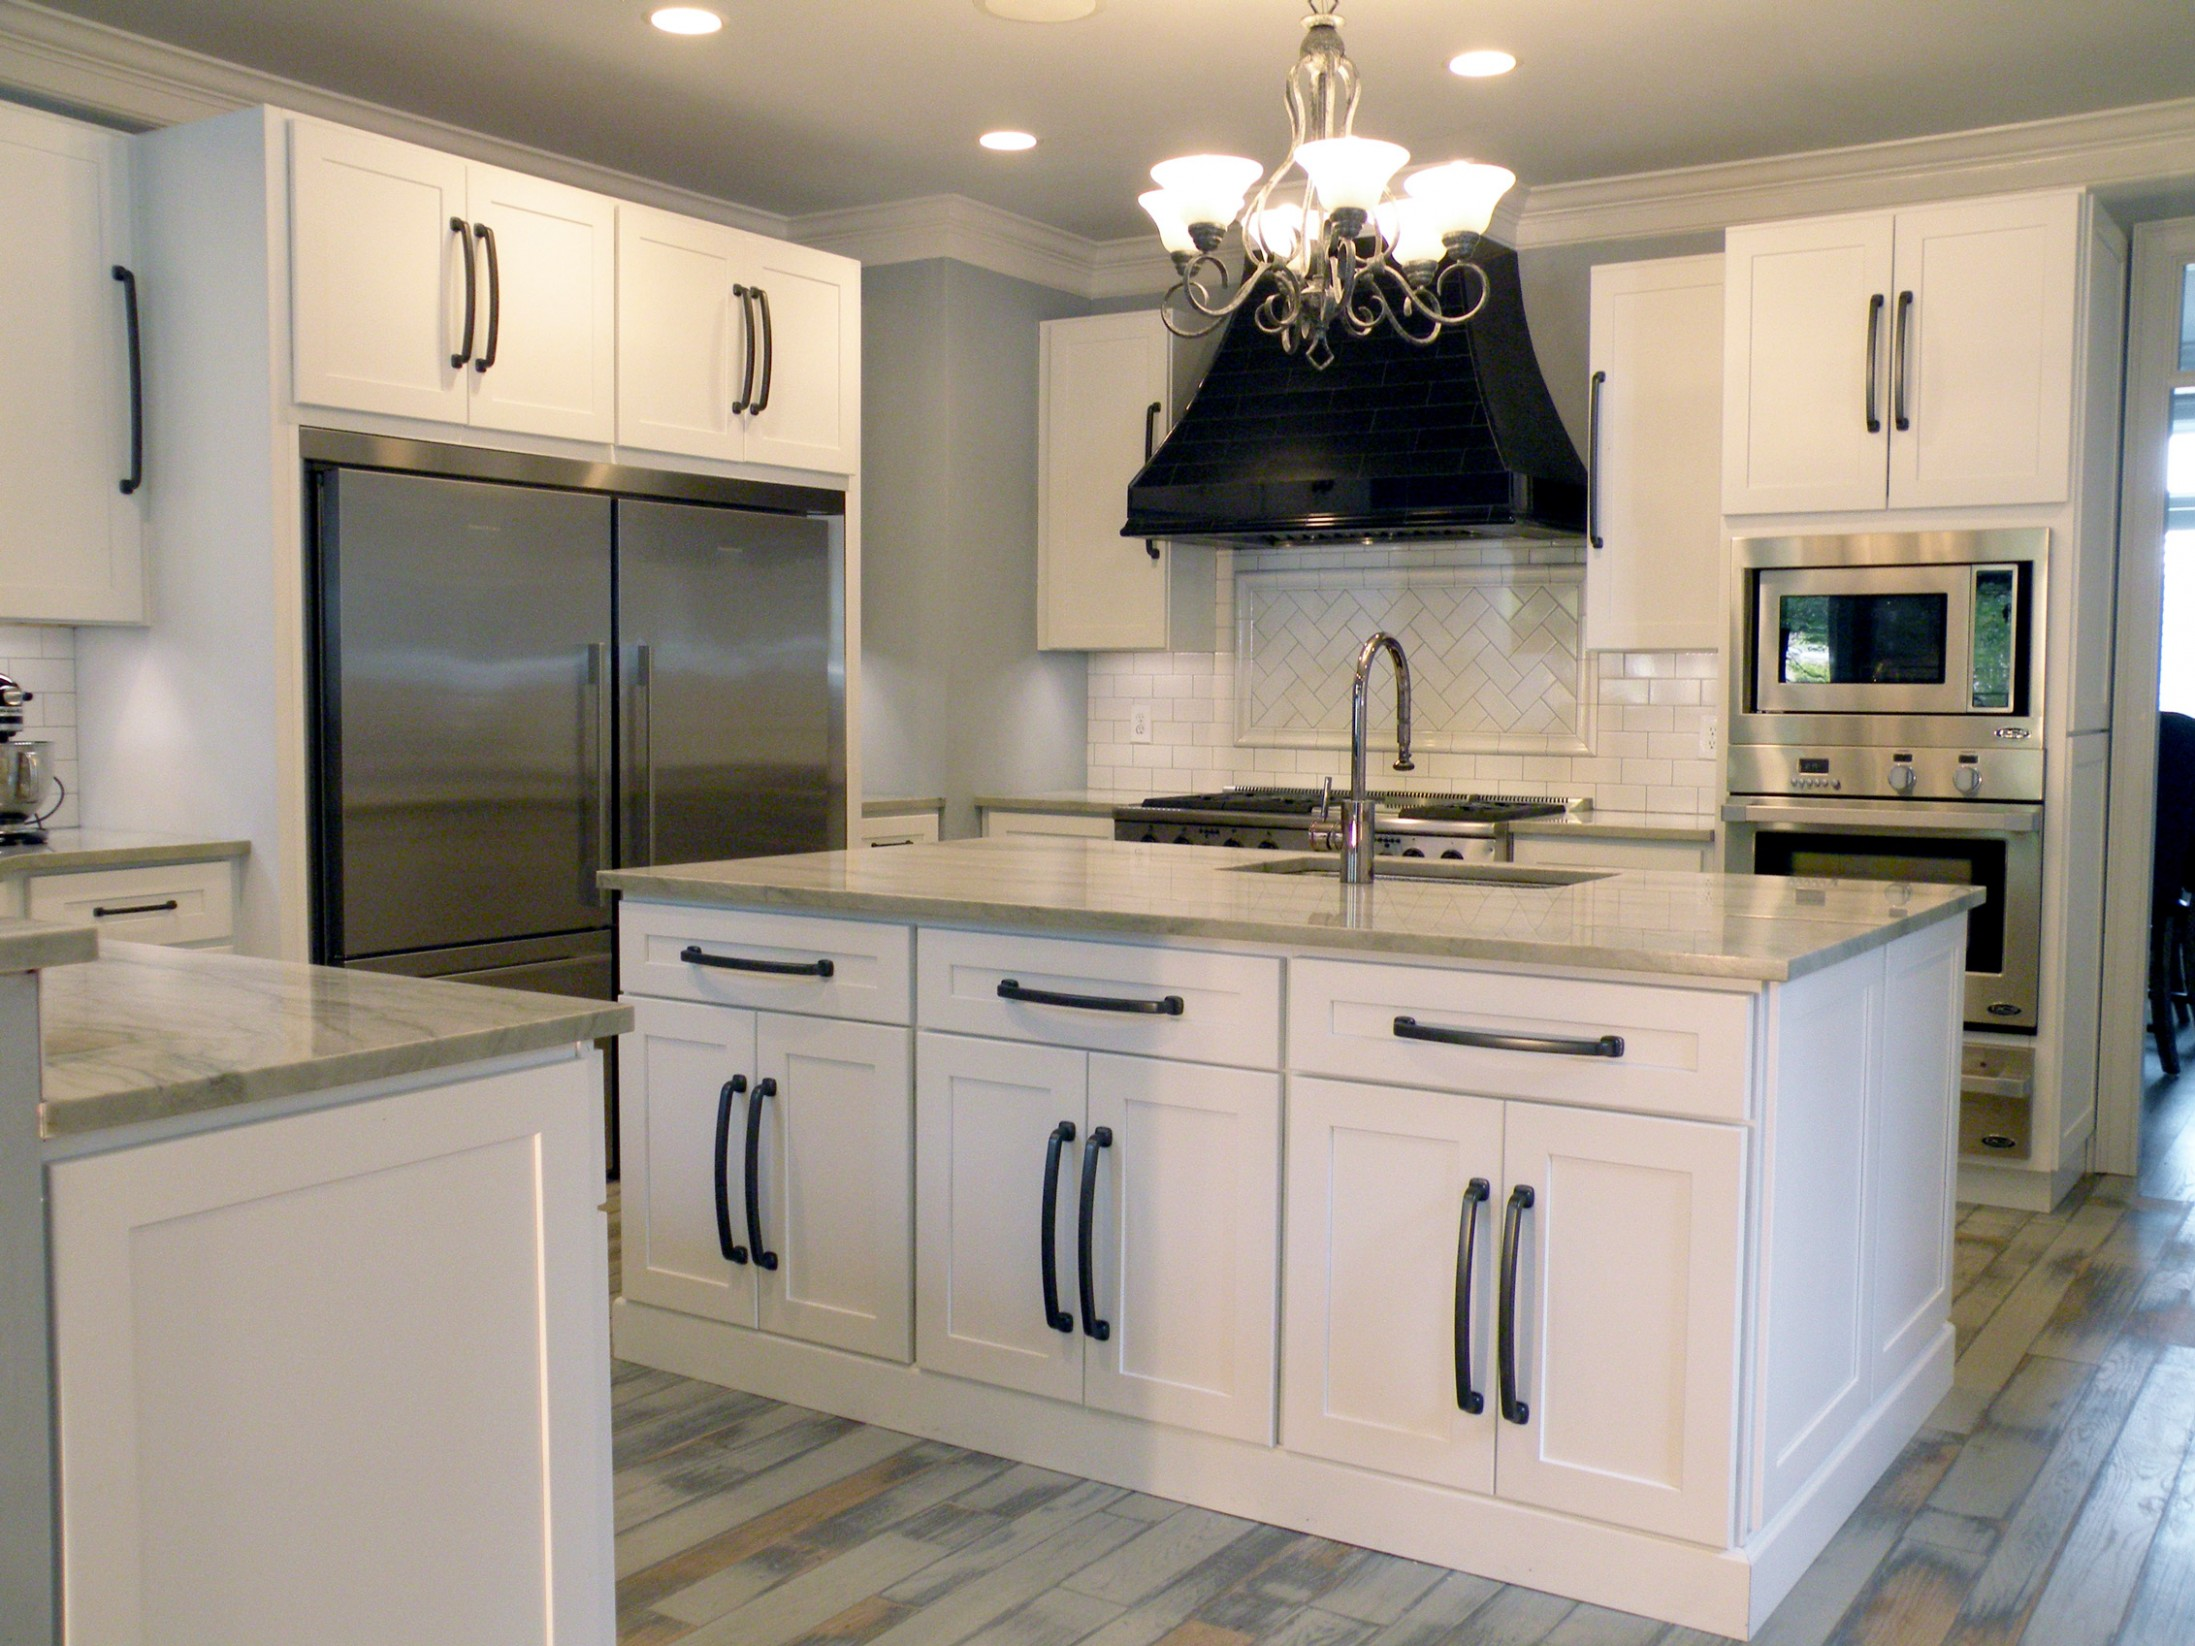 Heritage Classic Cabinets  Stylish classic kitchen cabinets - Whitehall Kitchen Cabinets